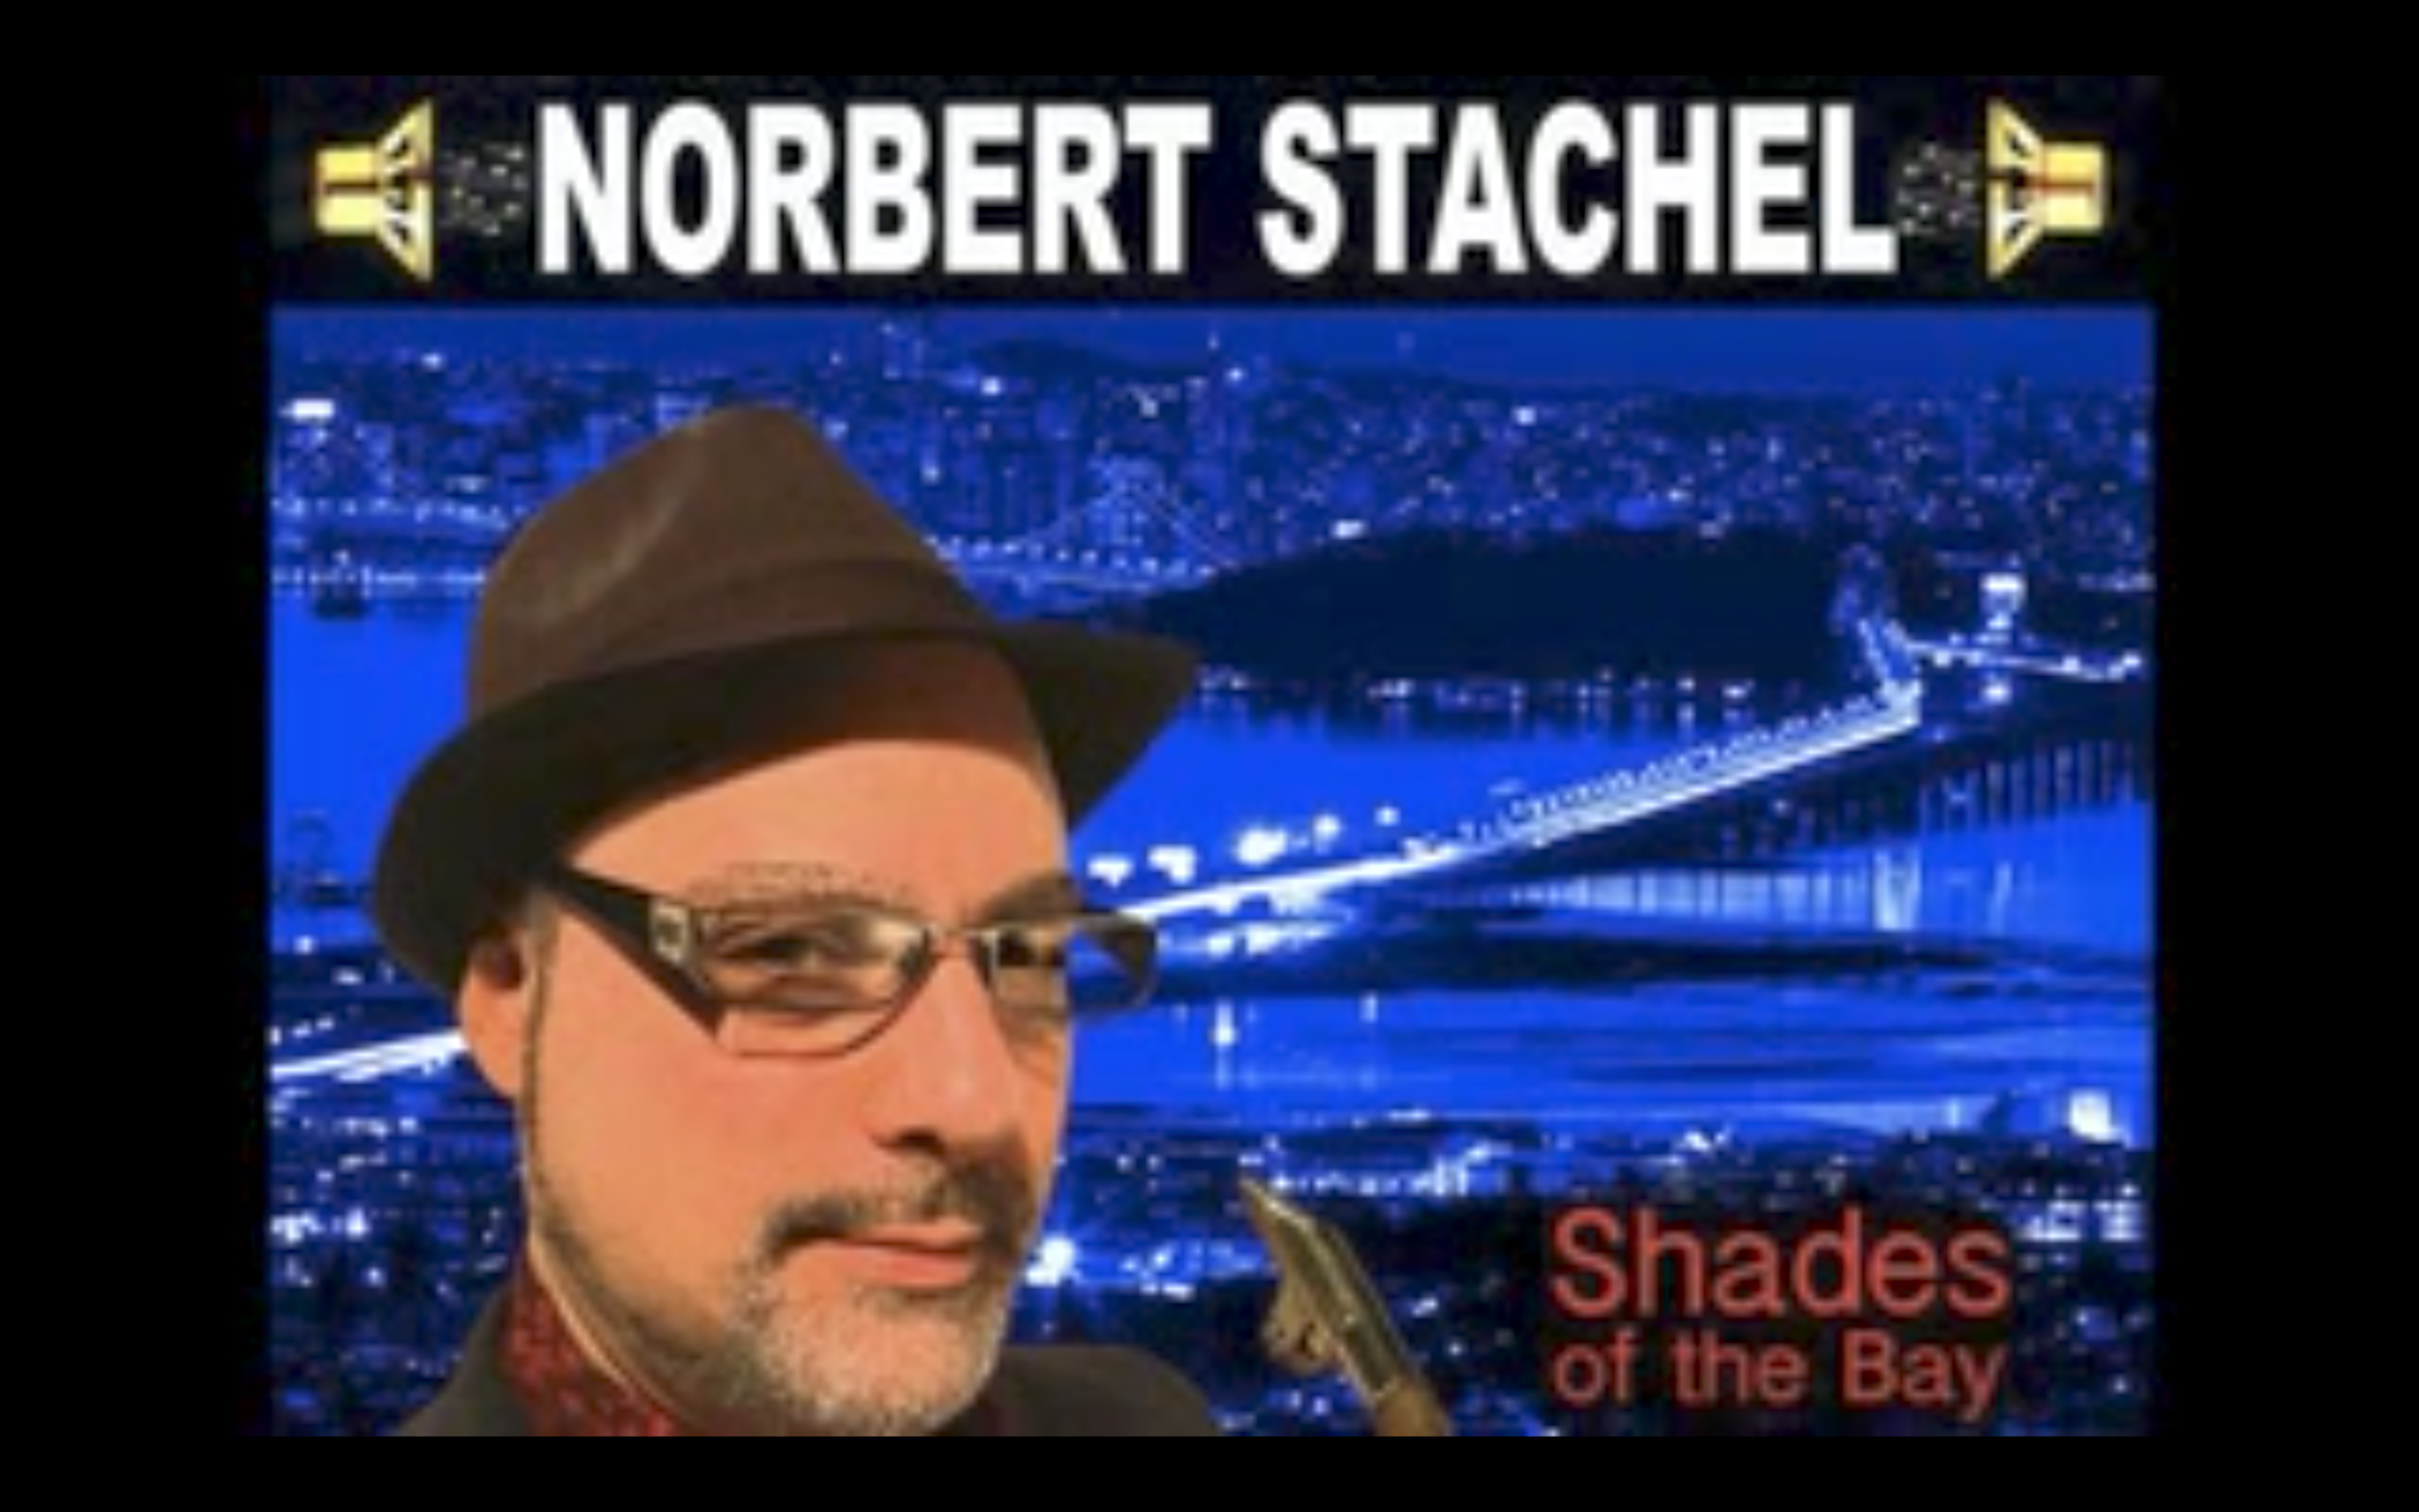 Norbert Stachel - Shades of the Bay.png